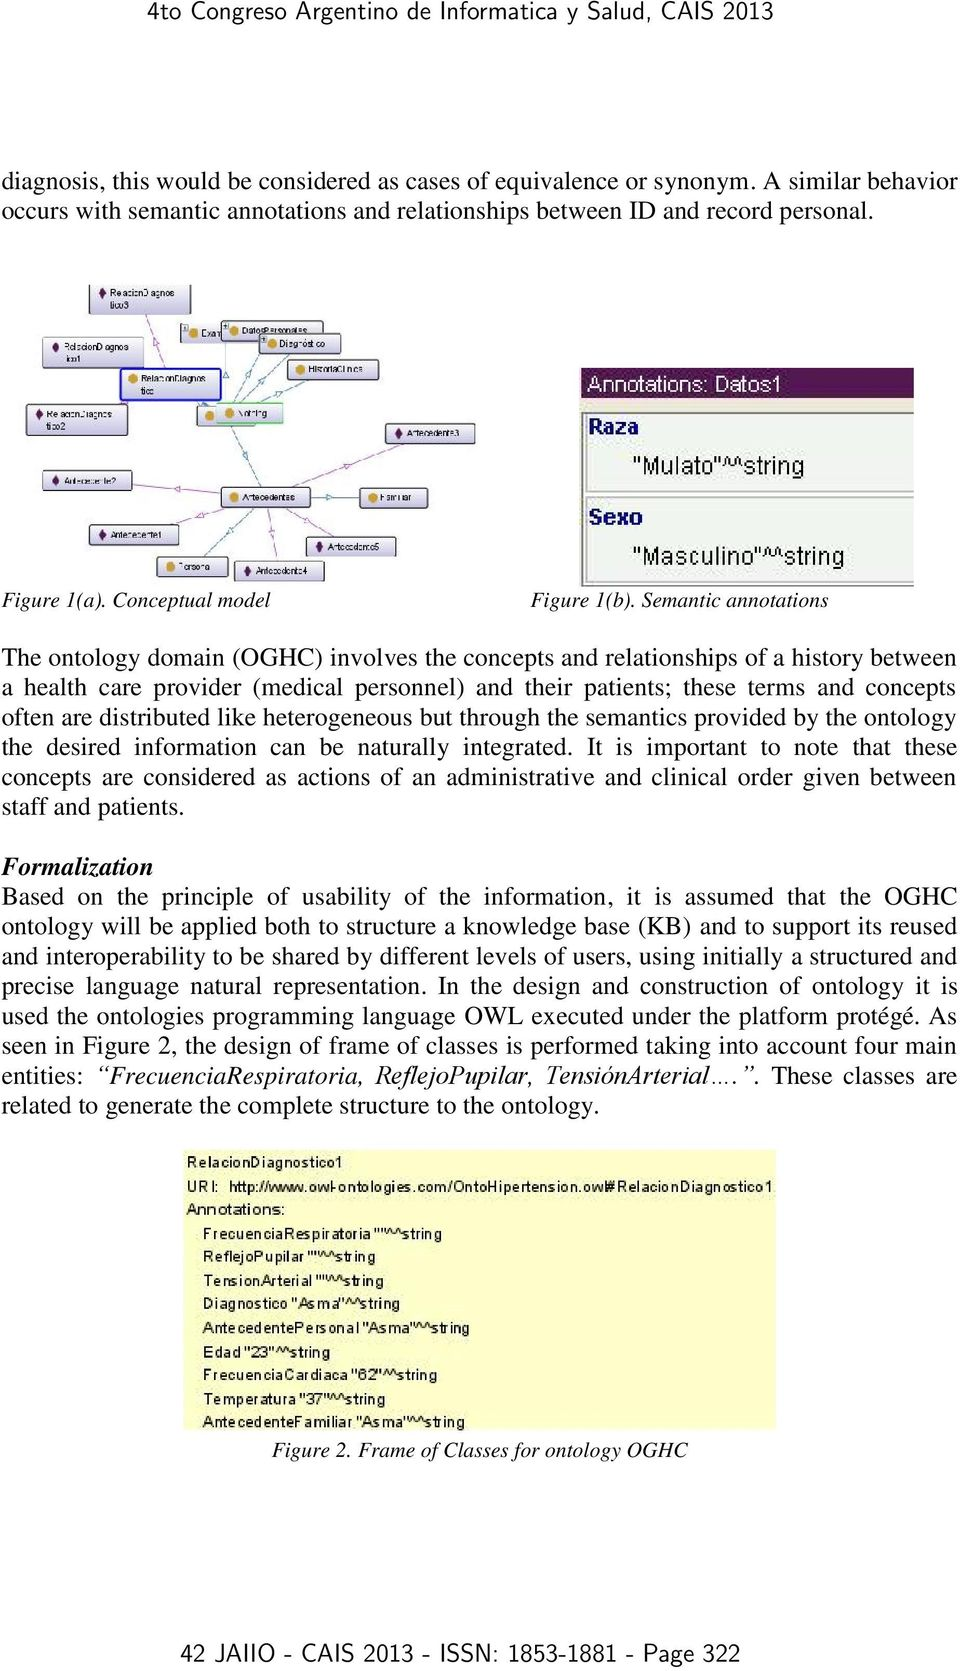 Semantic annotations The ontology domain (OGHC) involves the concepts and relationships of a history between a health care provider (medical personnel) and their patients; these terms and concepts